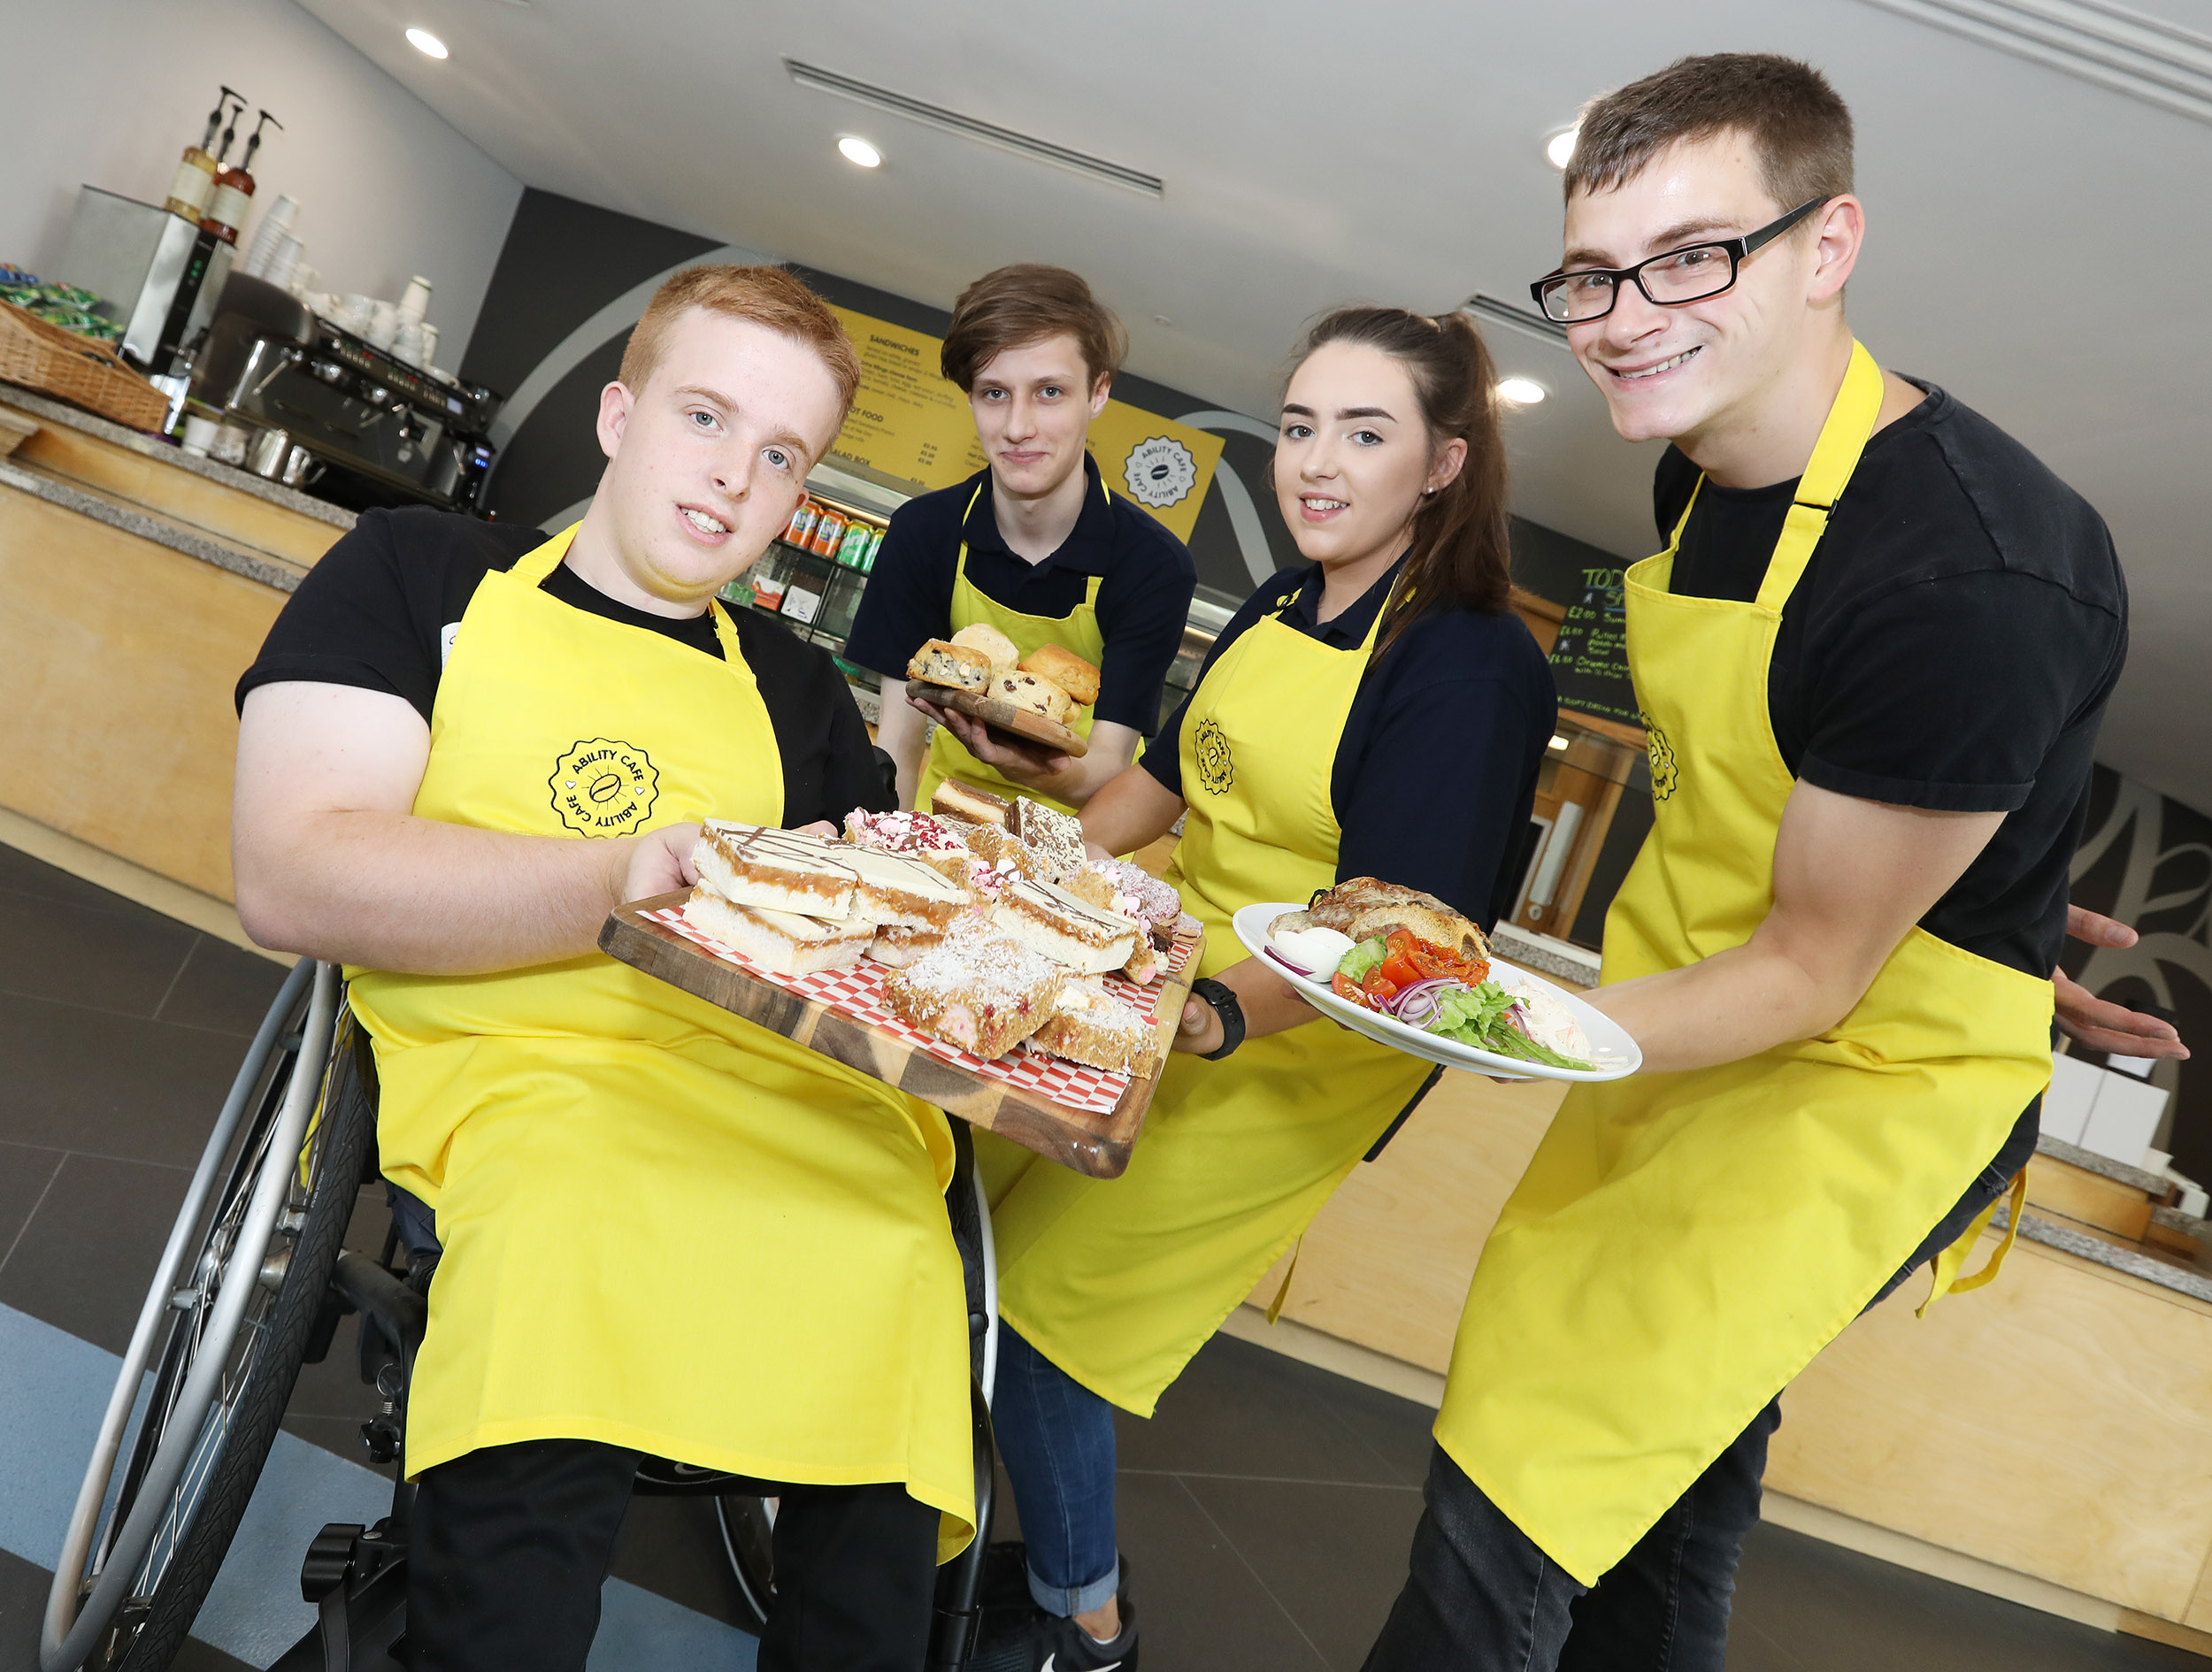 USEL opens two new cafes creating 20 new jobs